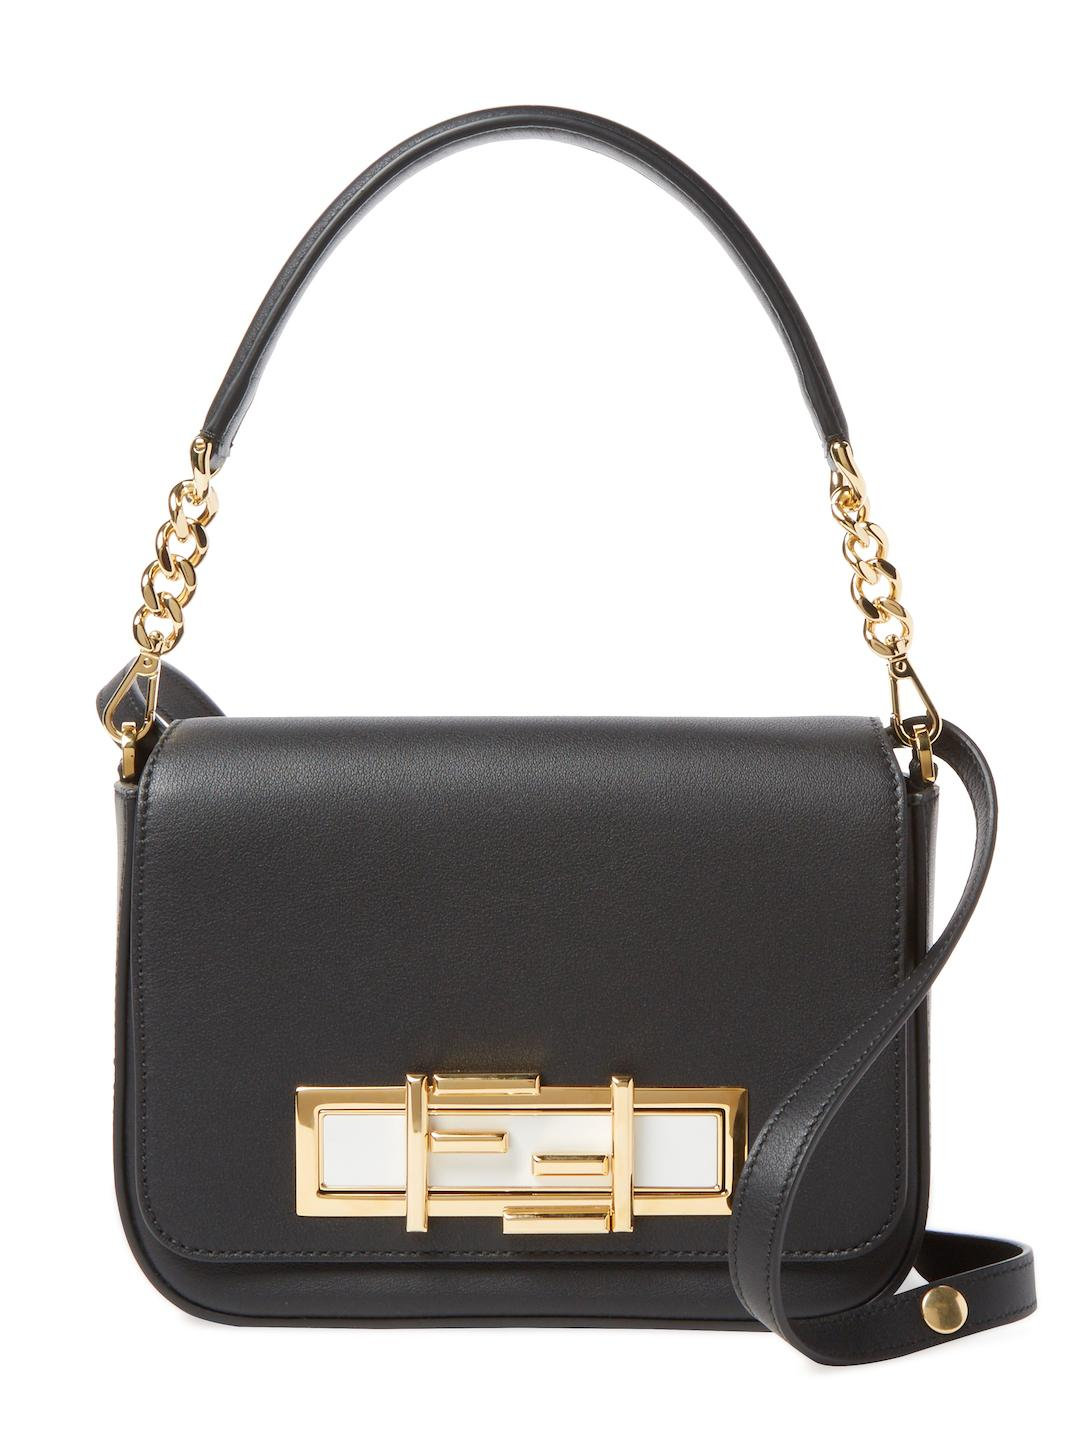 aebae760f1 Fendi 3baguette Small Leather Satchel in Black - Lyst